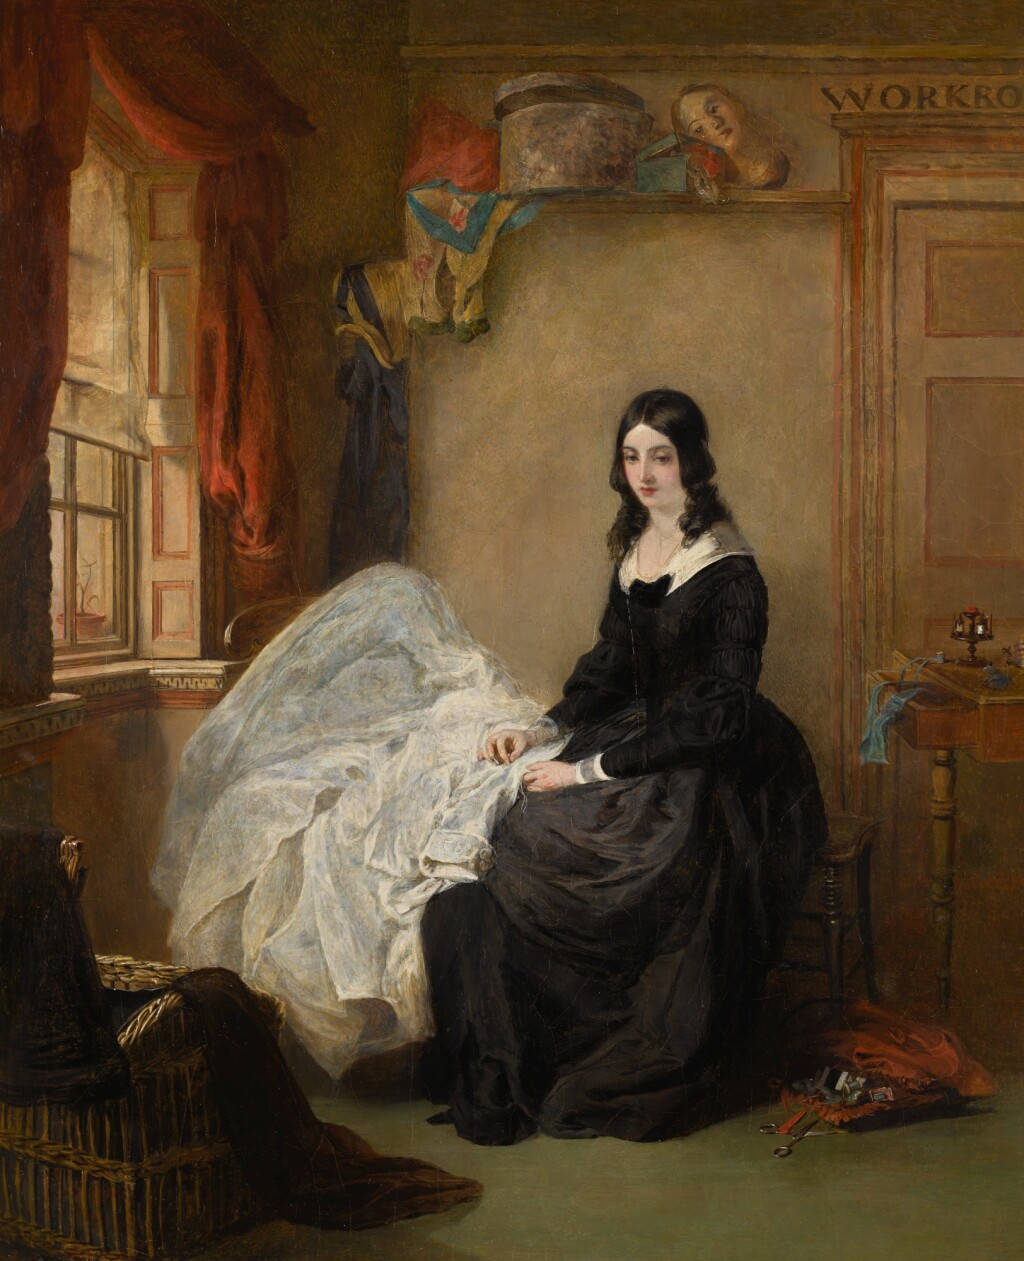 WILLIAM POWELL FRITH, R.A. | KATE NICKLEBY AT MADAME MANTALINI'S